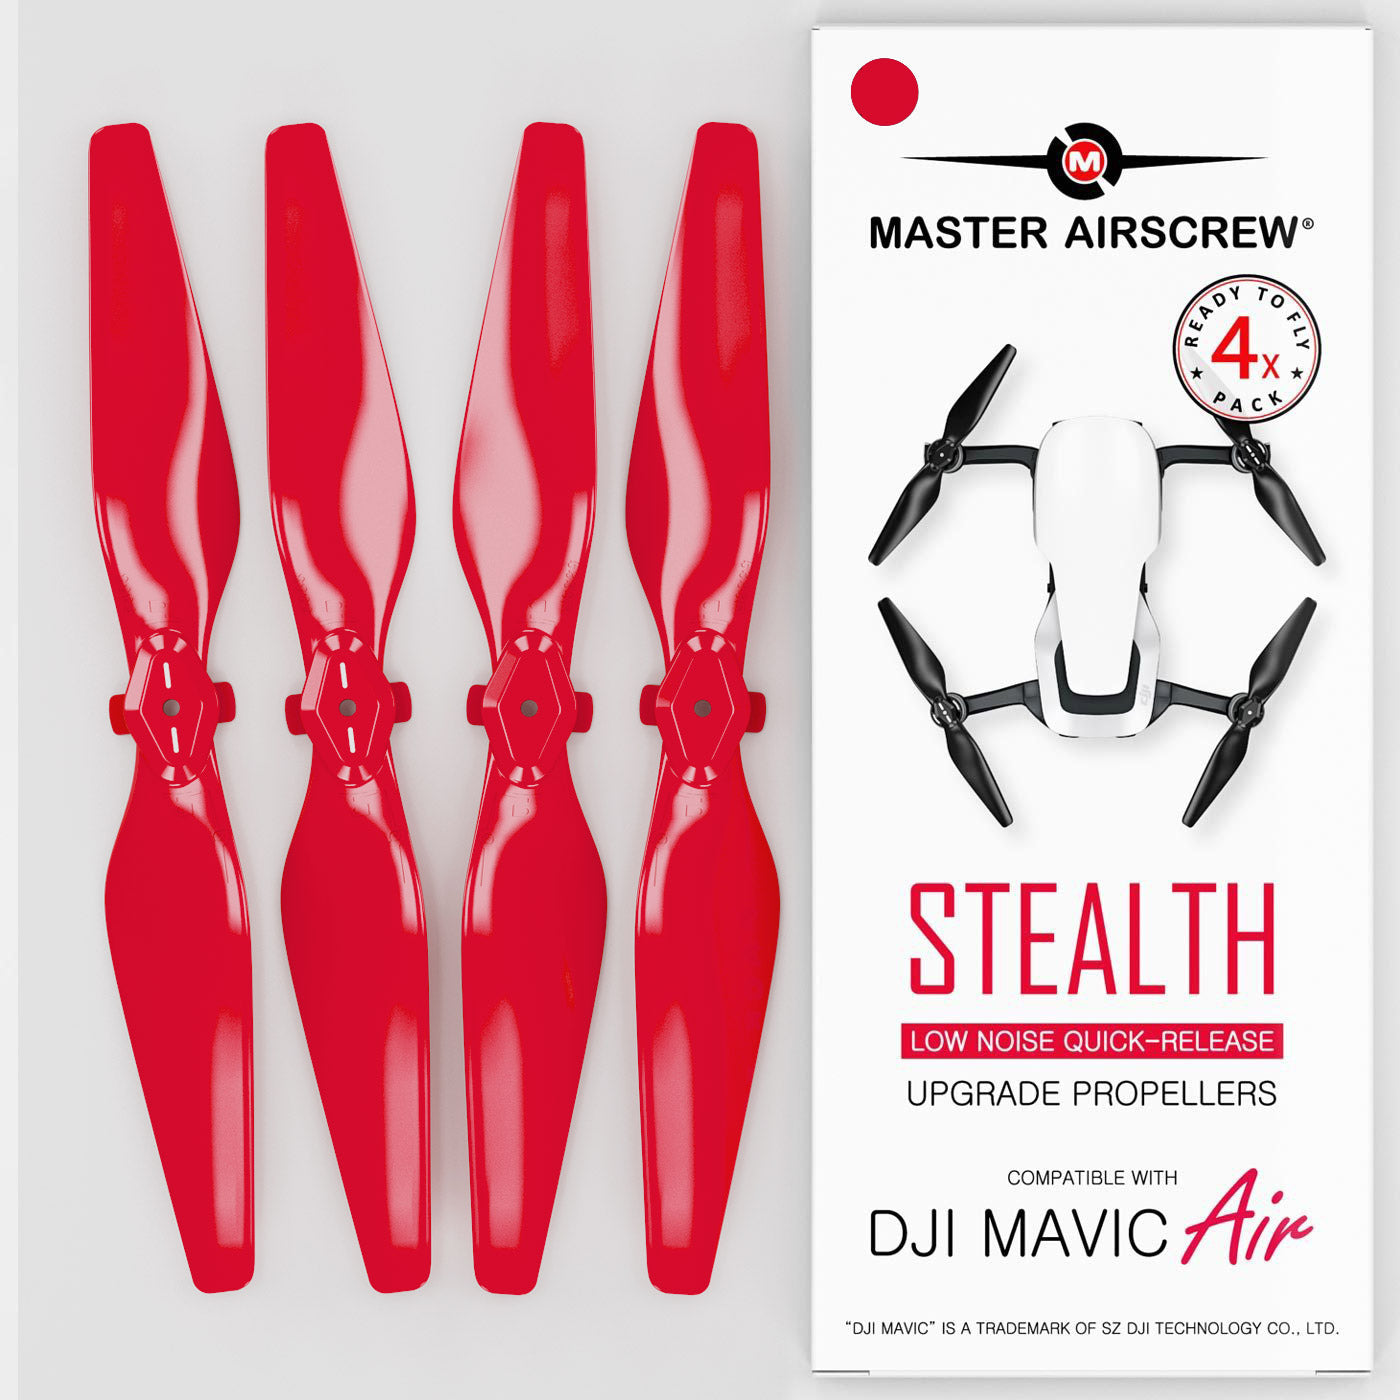 DJI Mavic Air STEALTH Upgrade Propellers - x4 Red